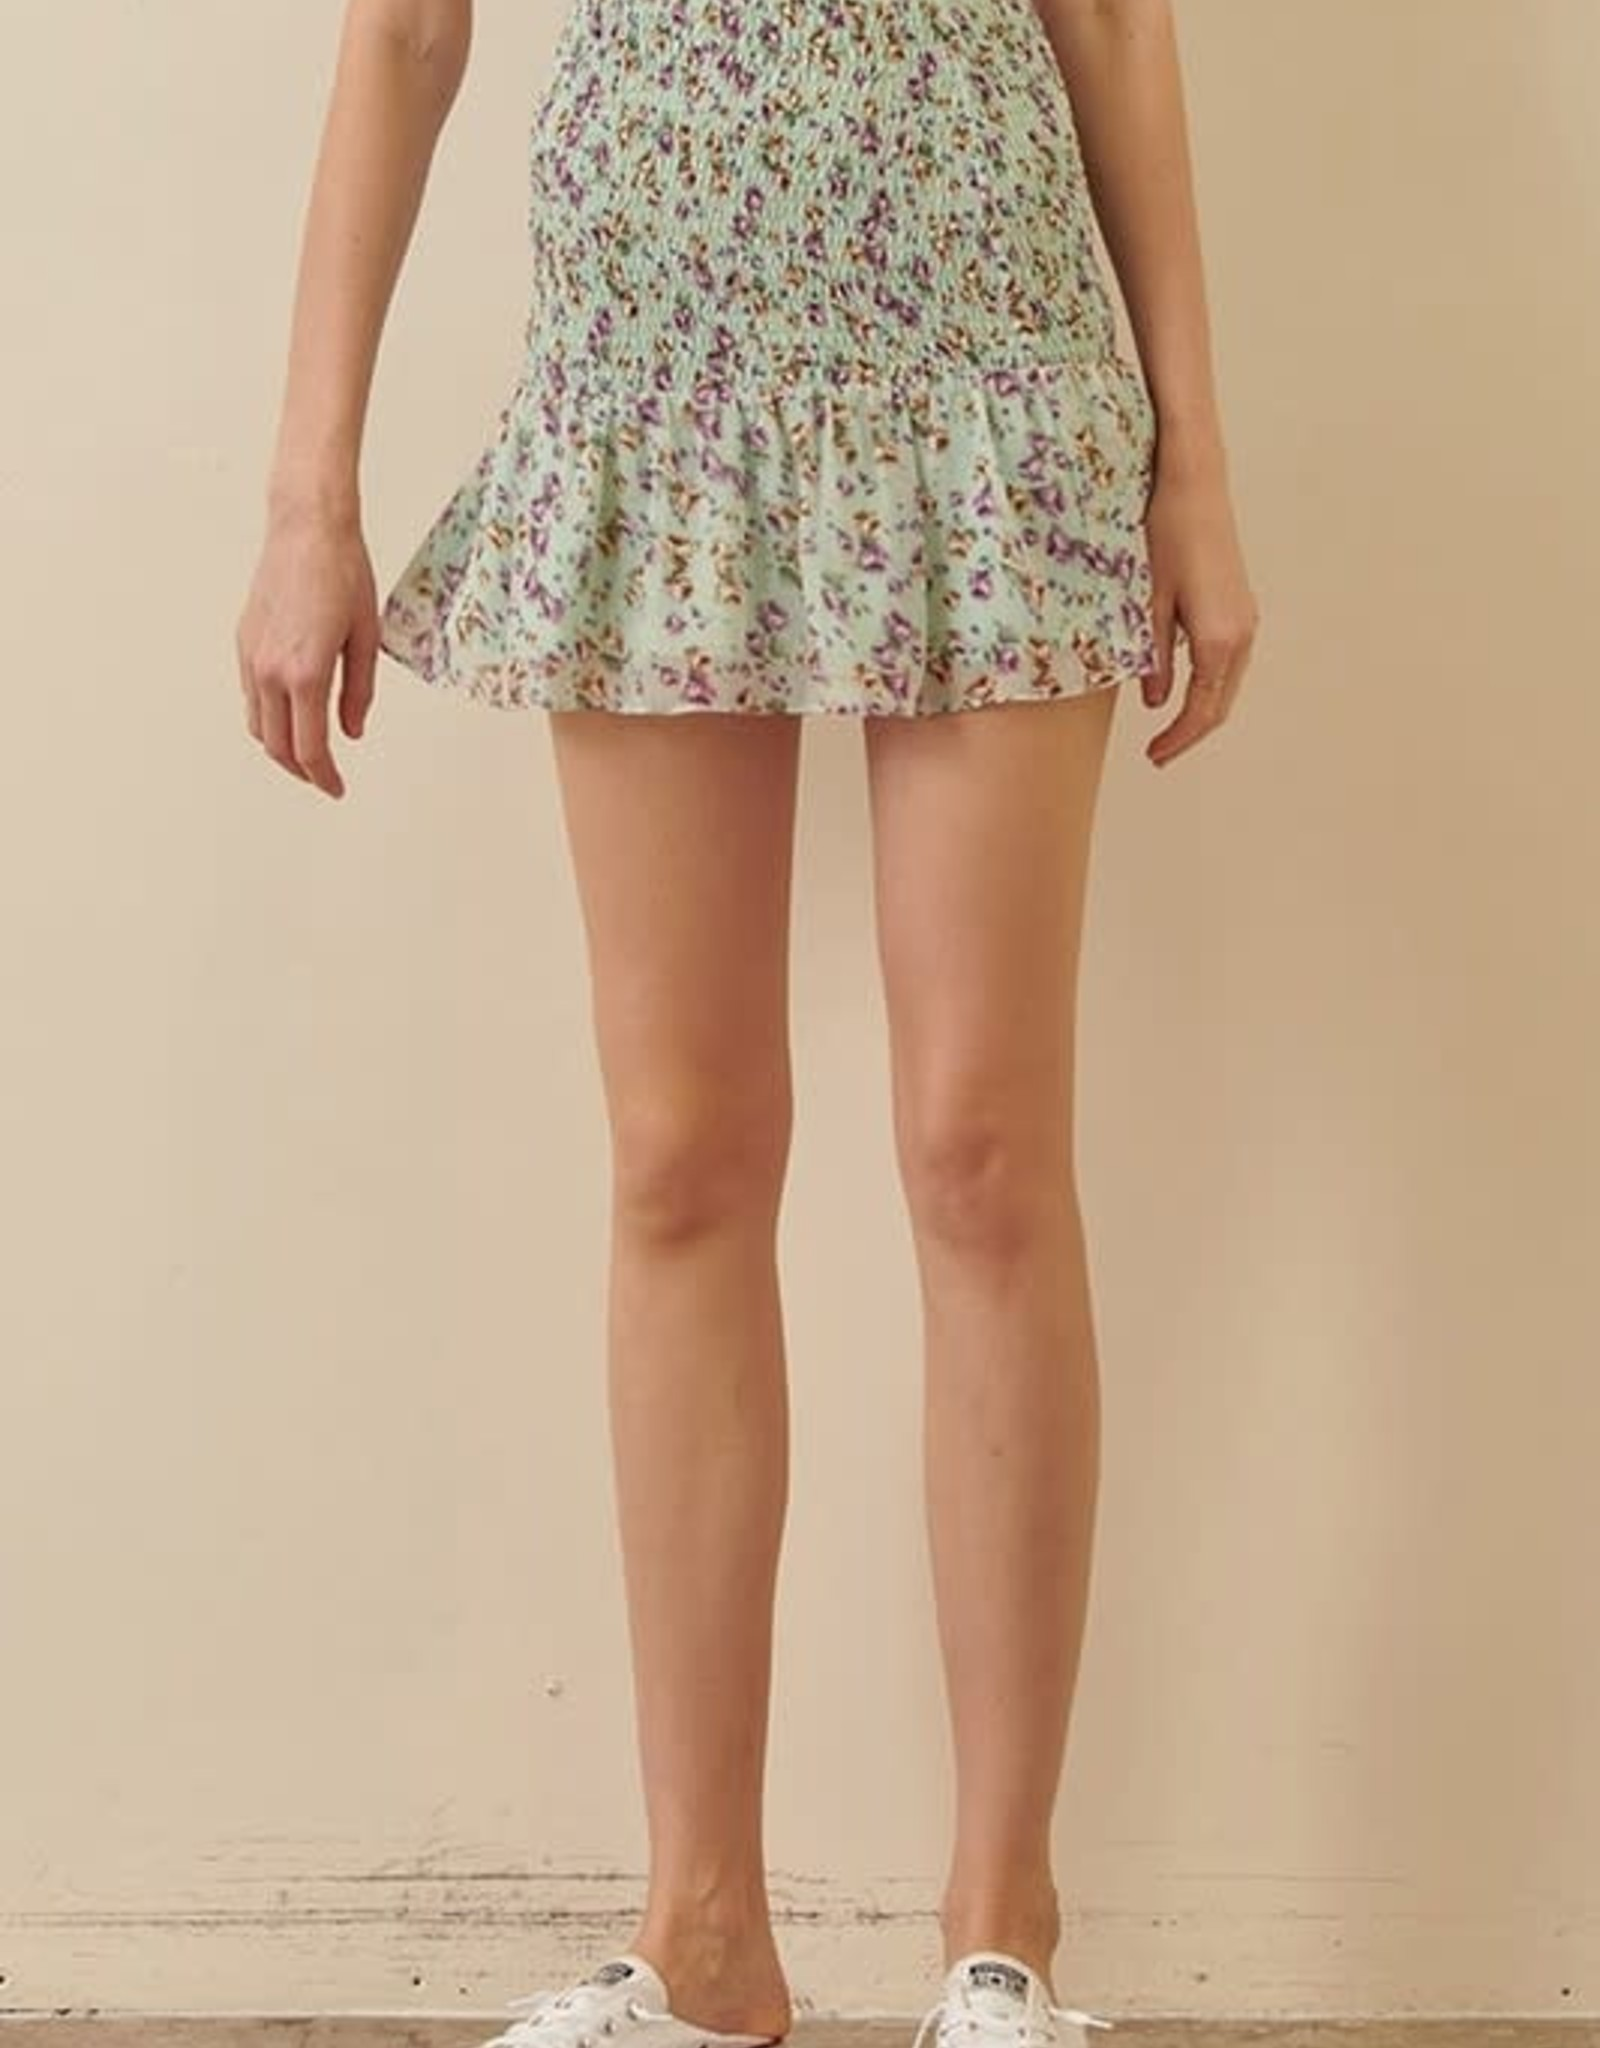 Little Flower Skirt